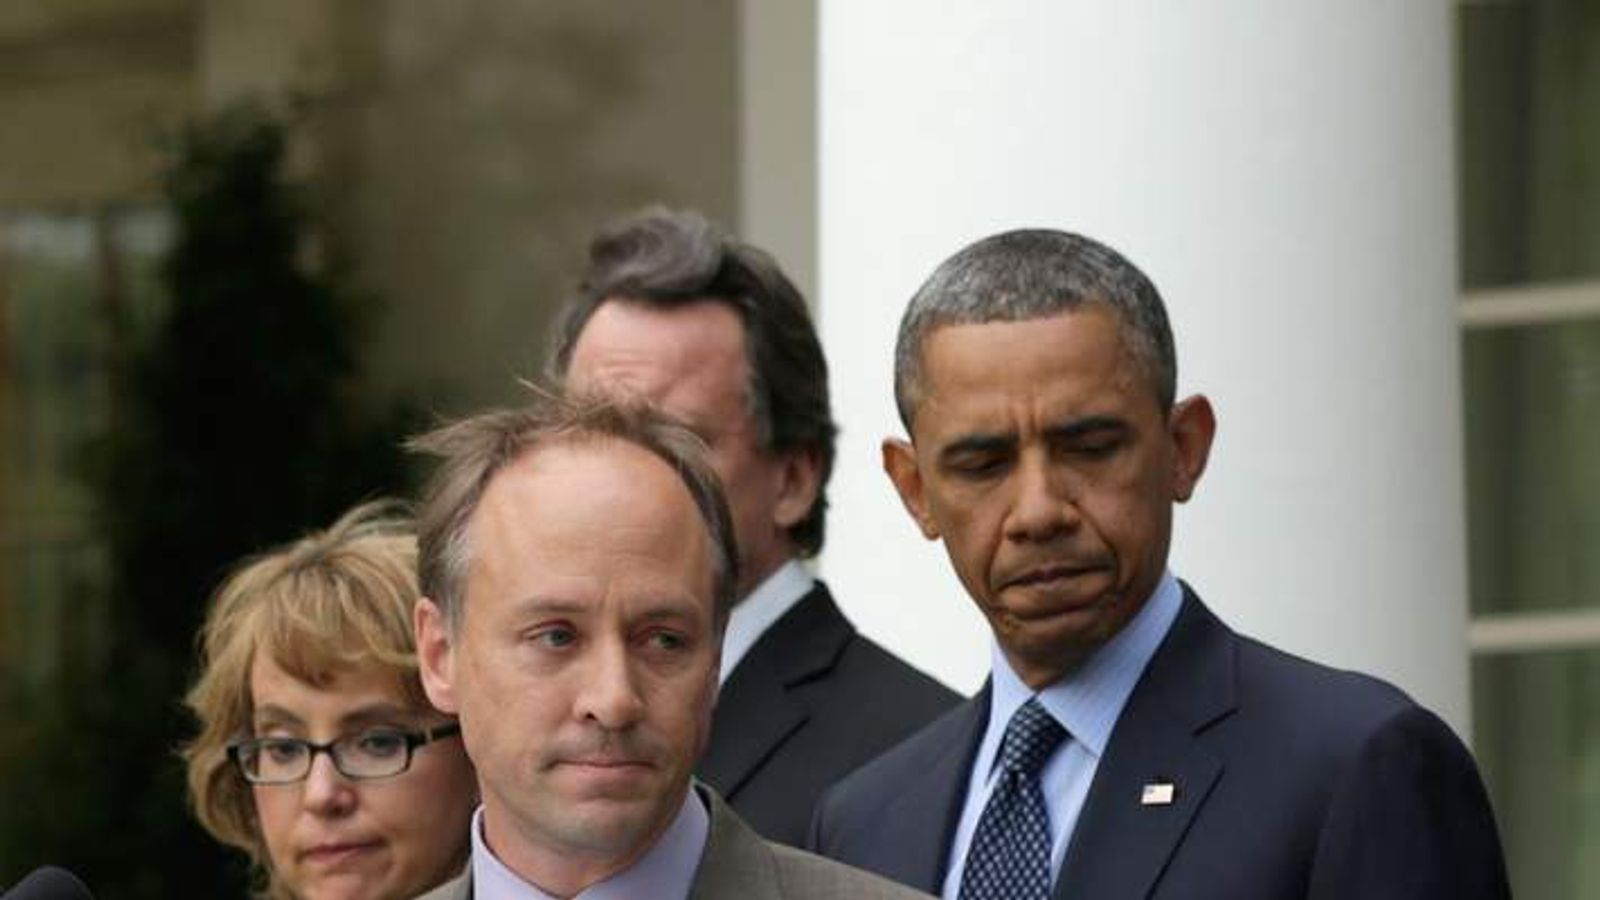 The president comforts Sandy Hook parent Mark Barden